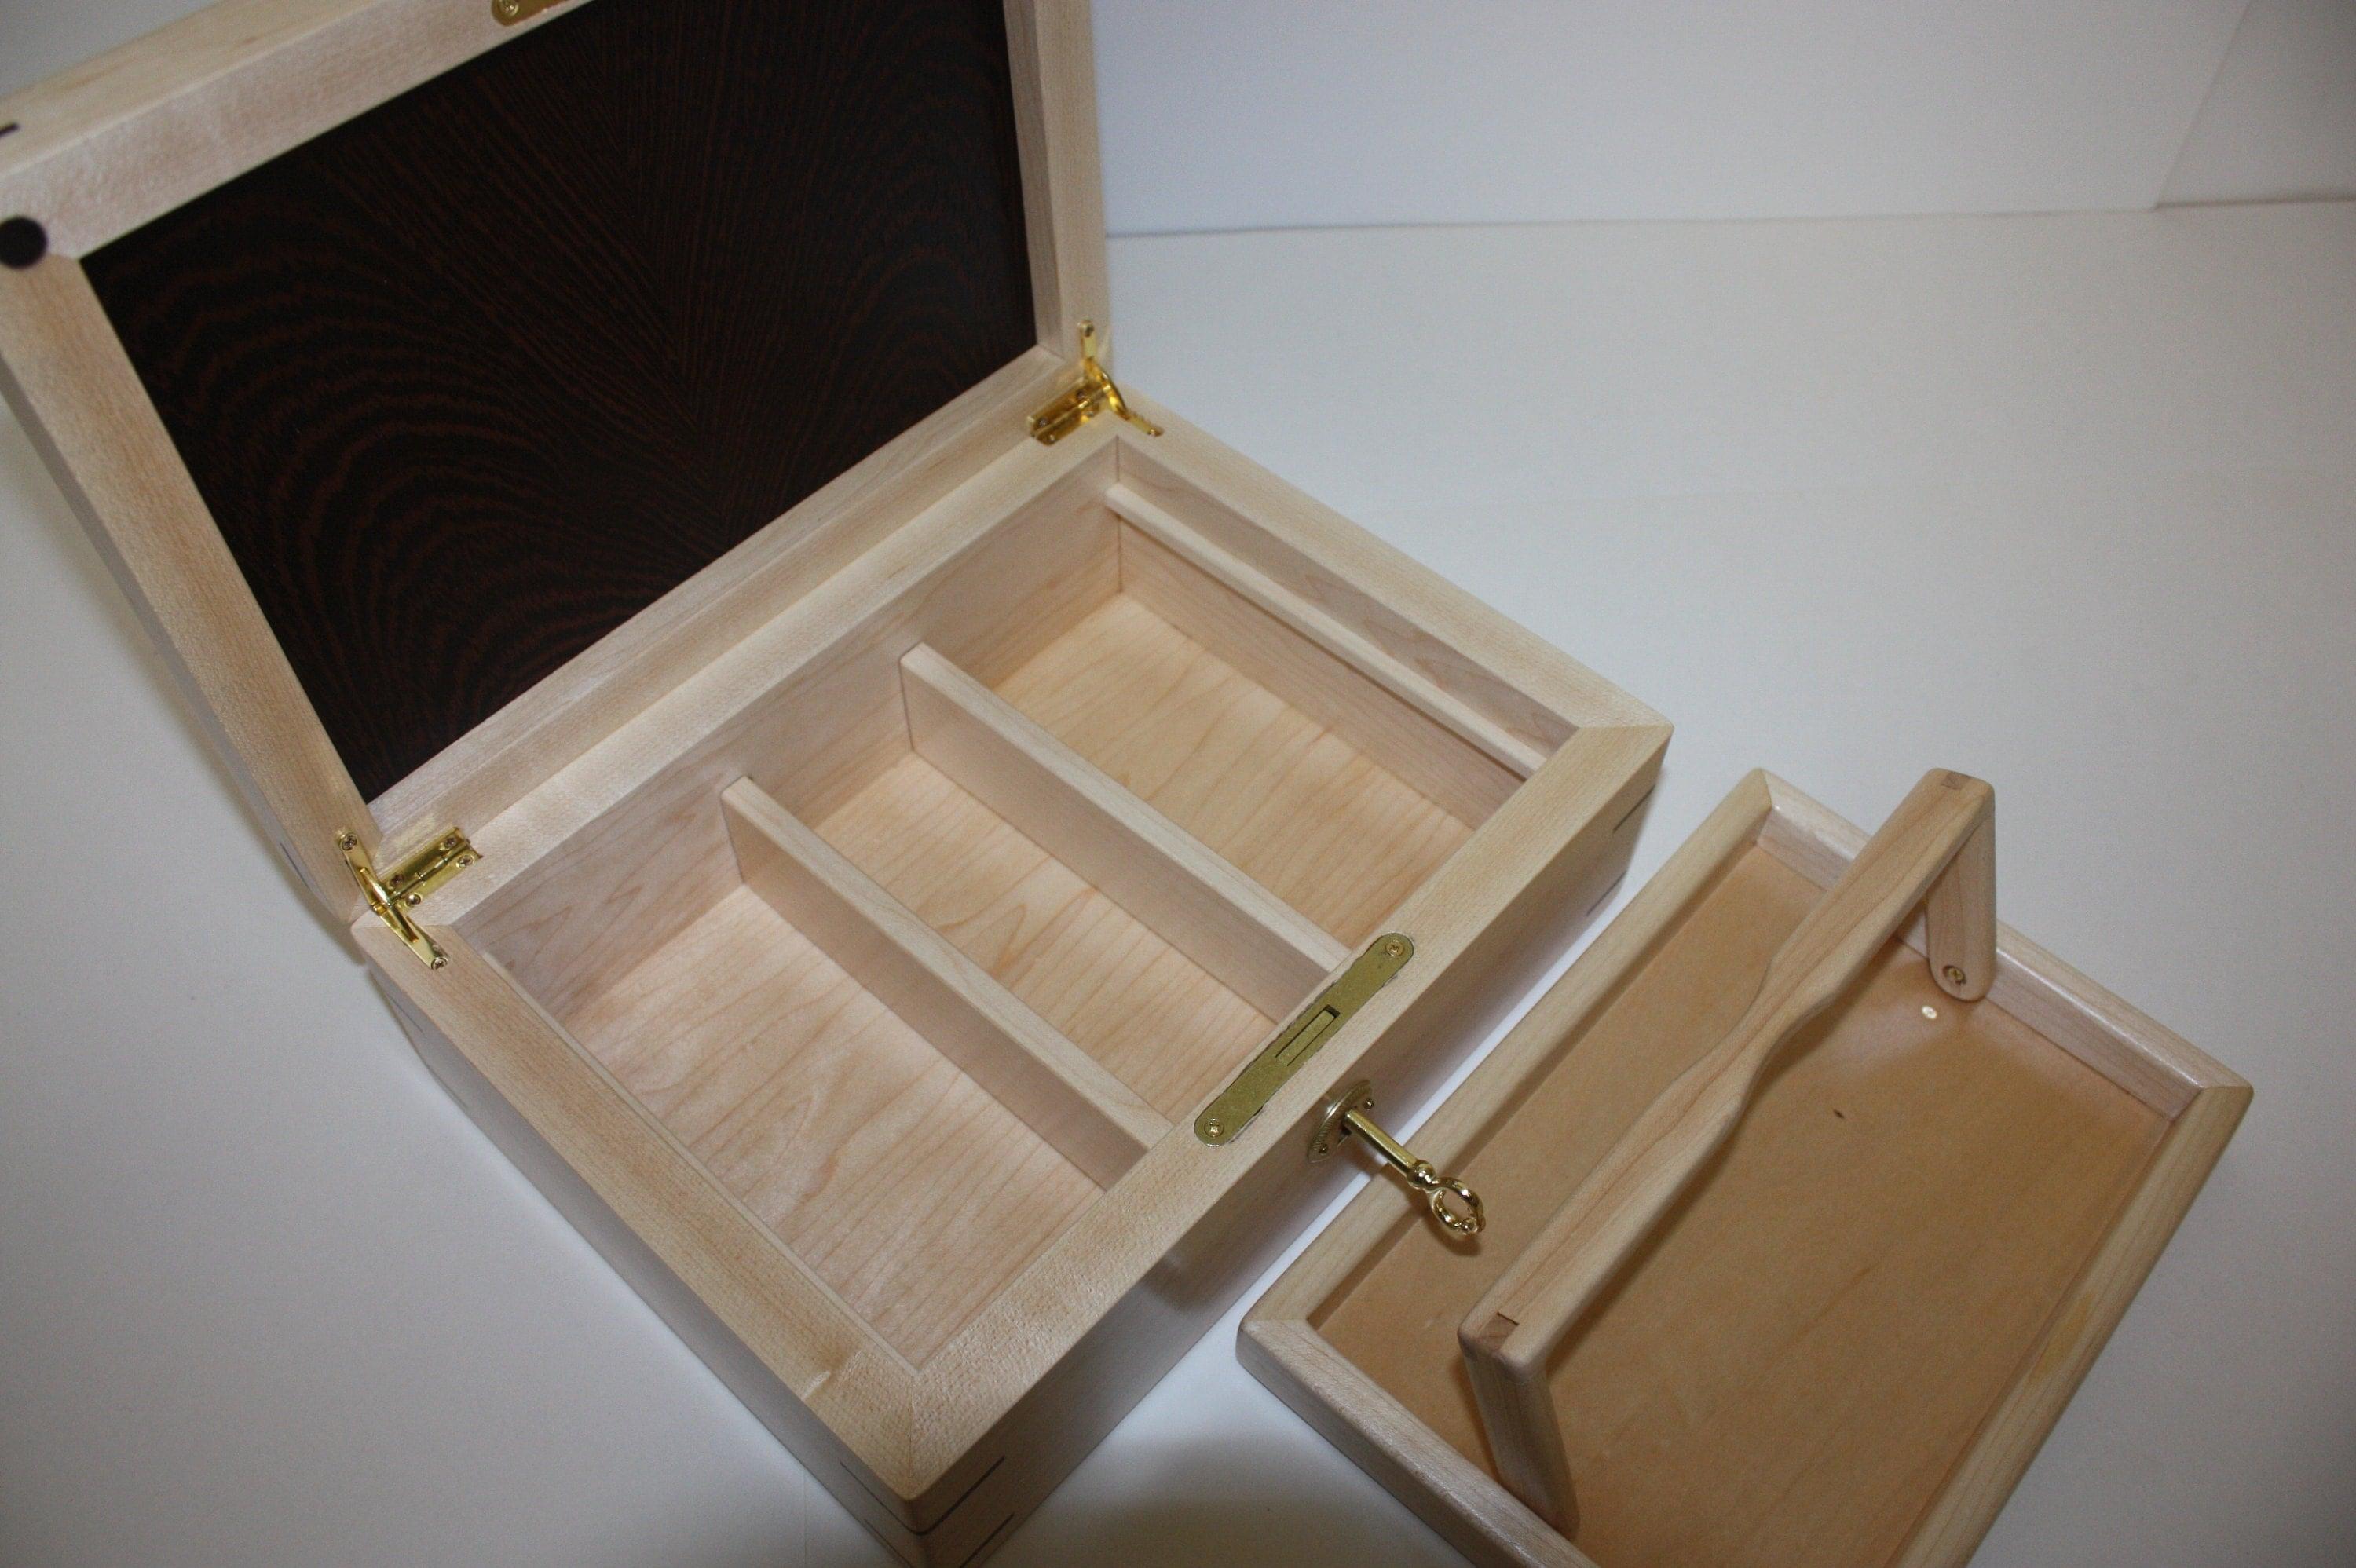 Maple Locking Box with Lift Out Tray and Dividers